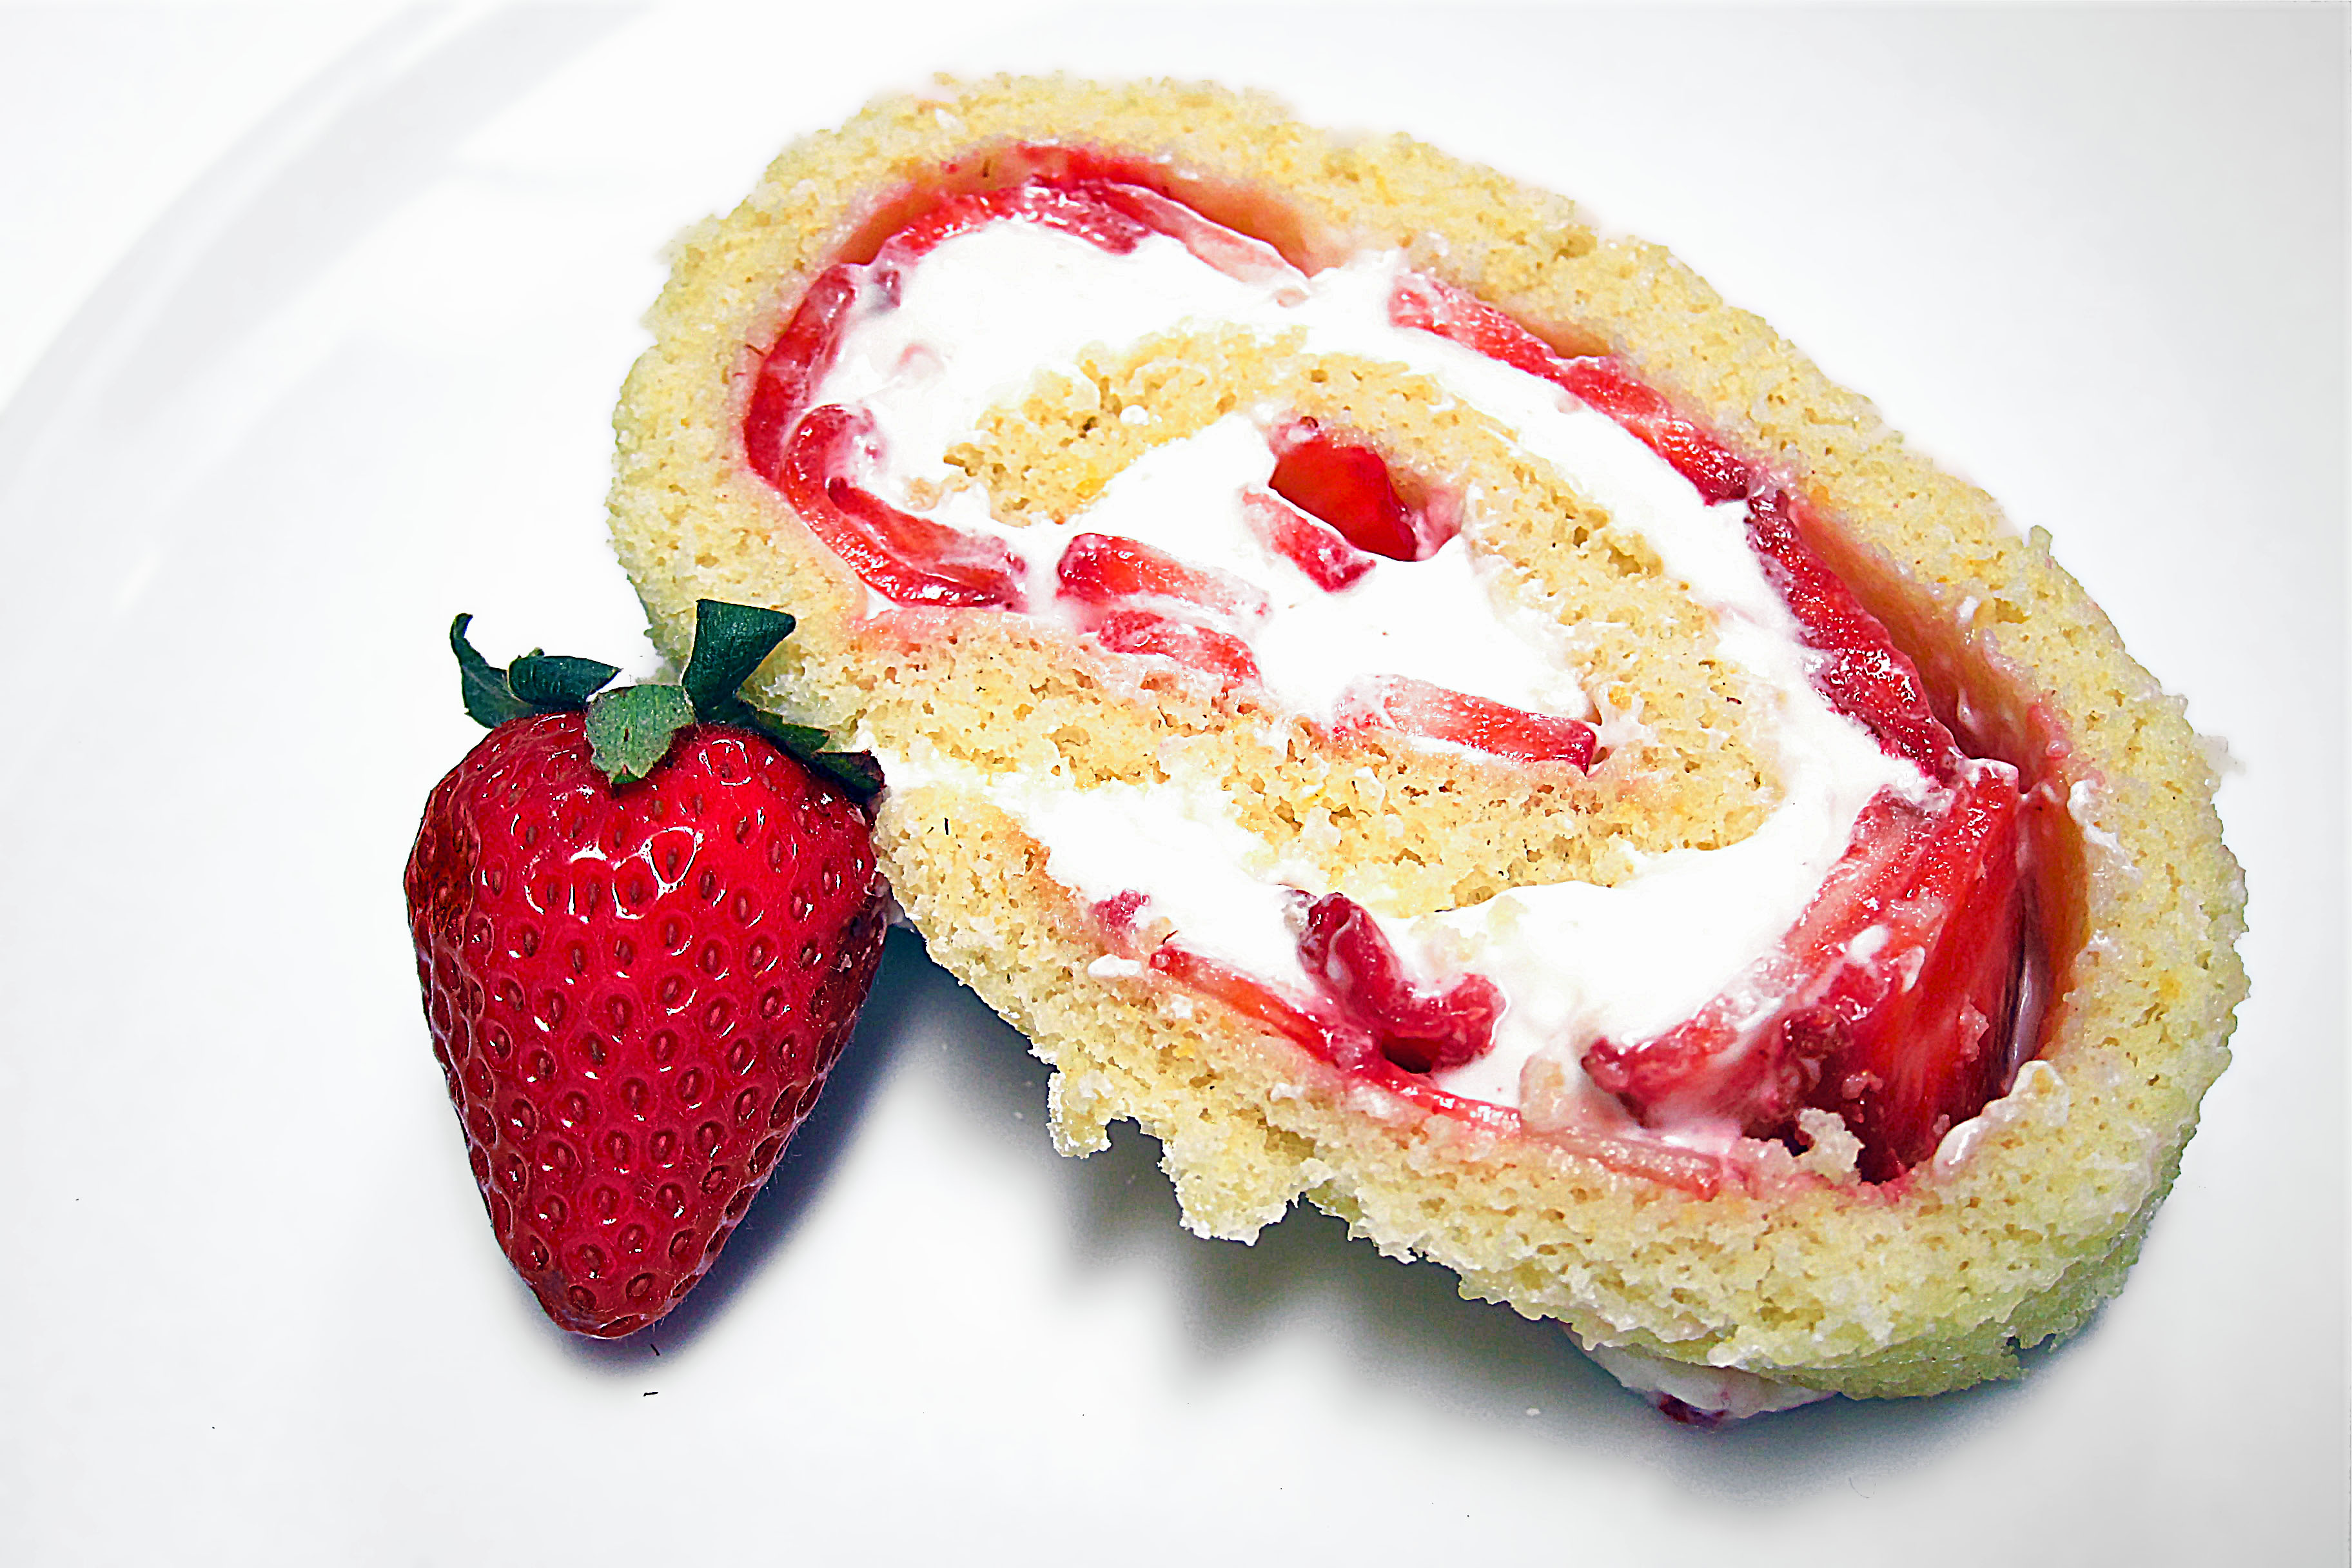 Jelly Roll Cake Recipe And Procedure: Strawberry Cheesecake Jelly Roll Cake